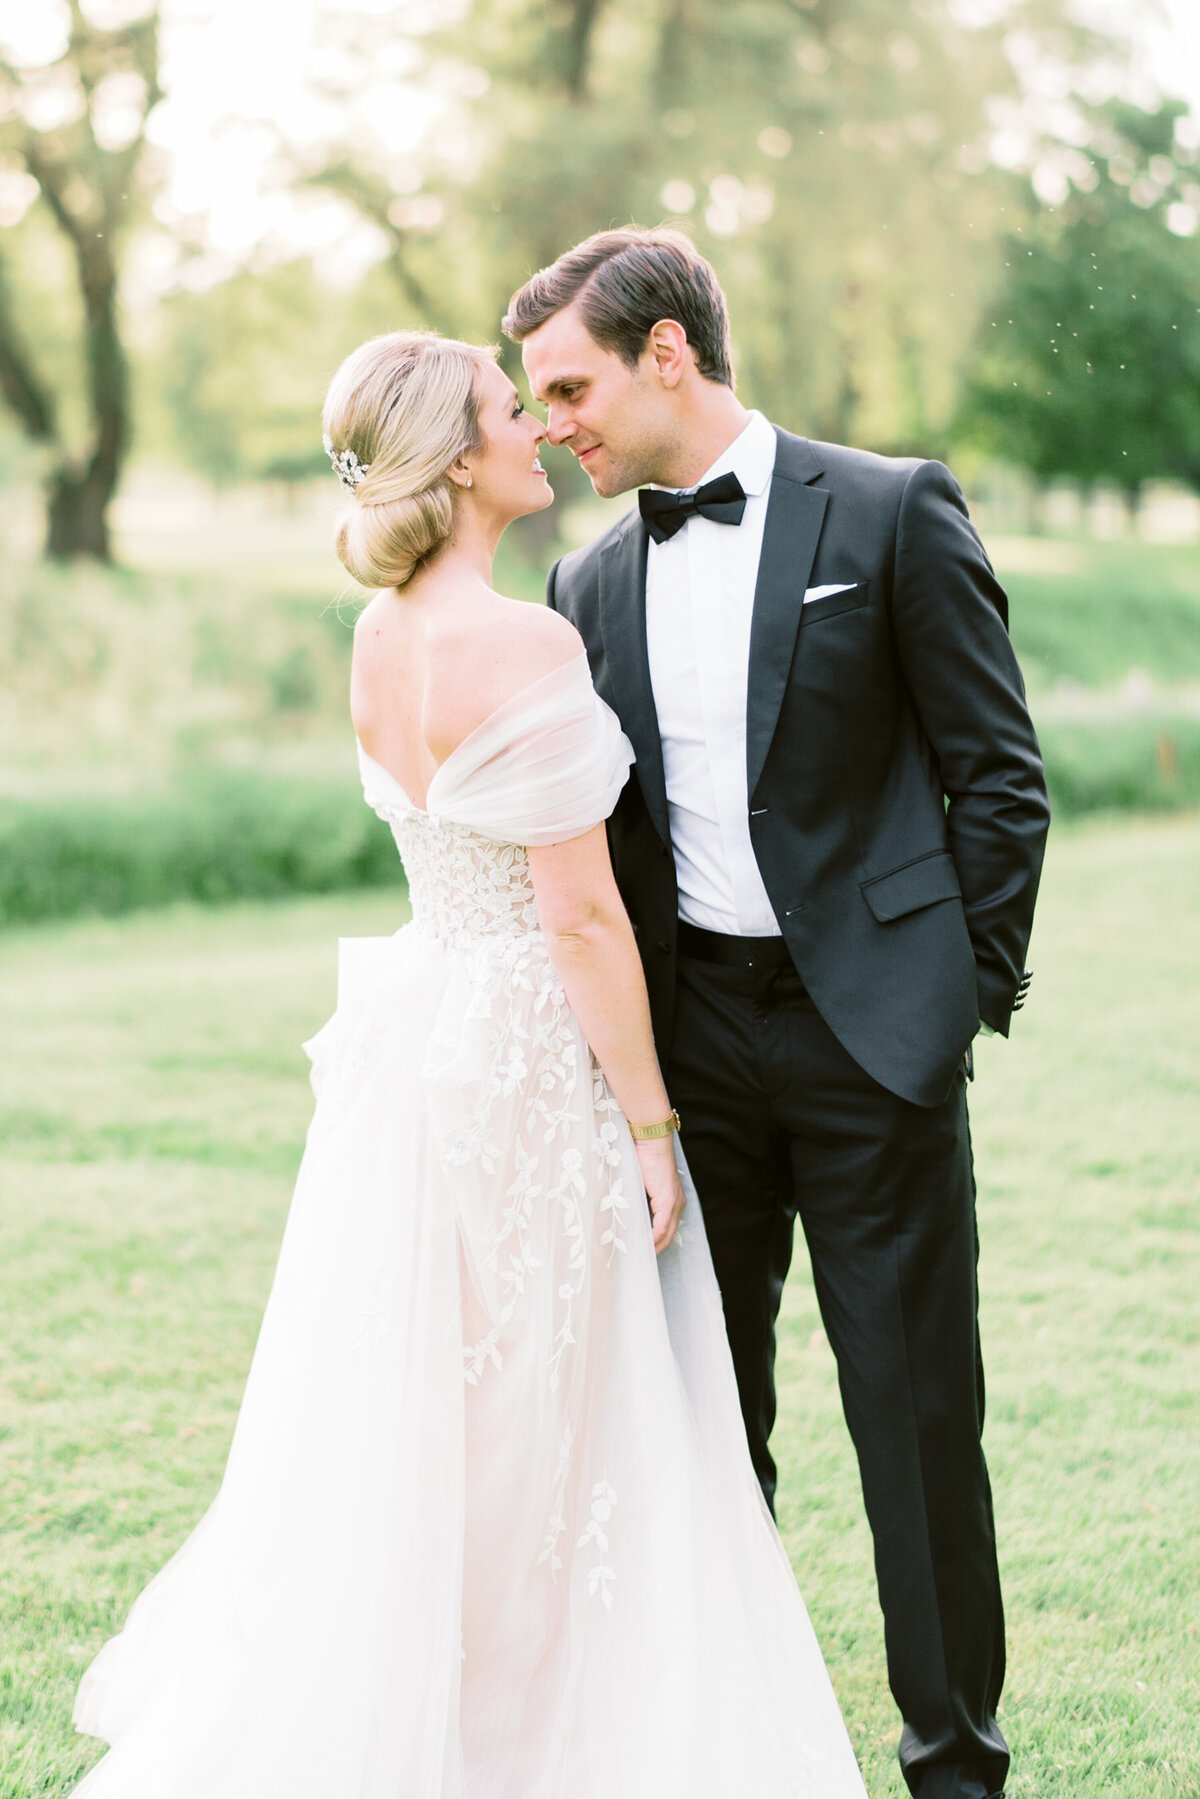 Minneapolis Wedding Photographer, Minnesota wedding photographer, MN wedding photographer, Minneapolis light and airy photographer, Green Bay photographer, Green Bay wedding photographer5